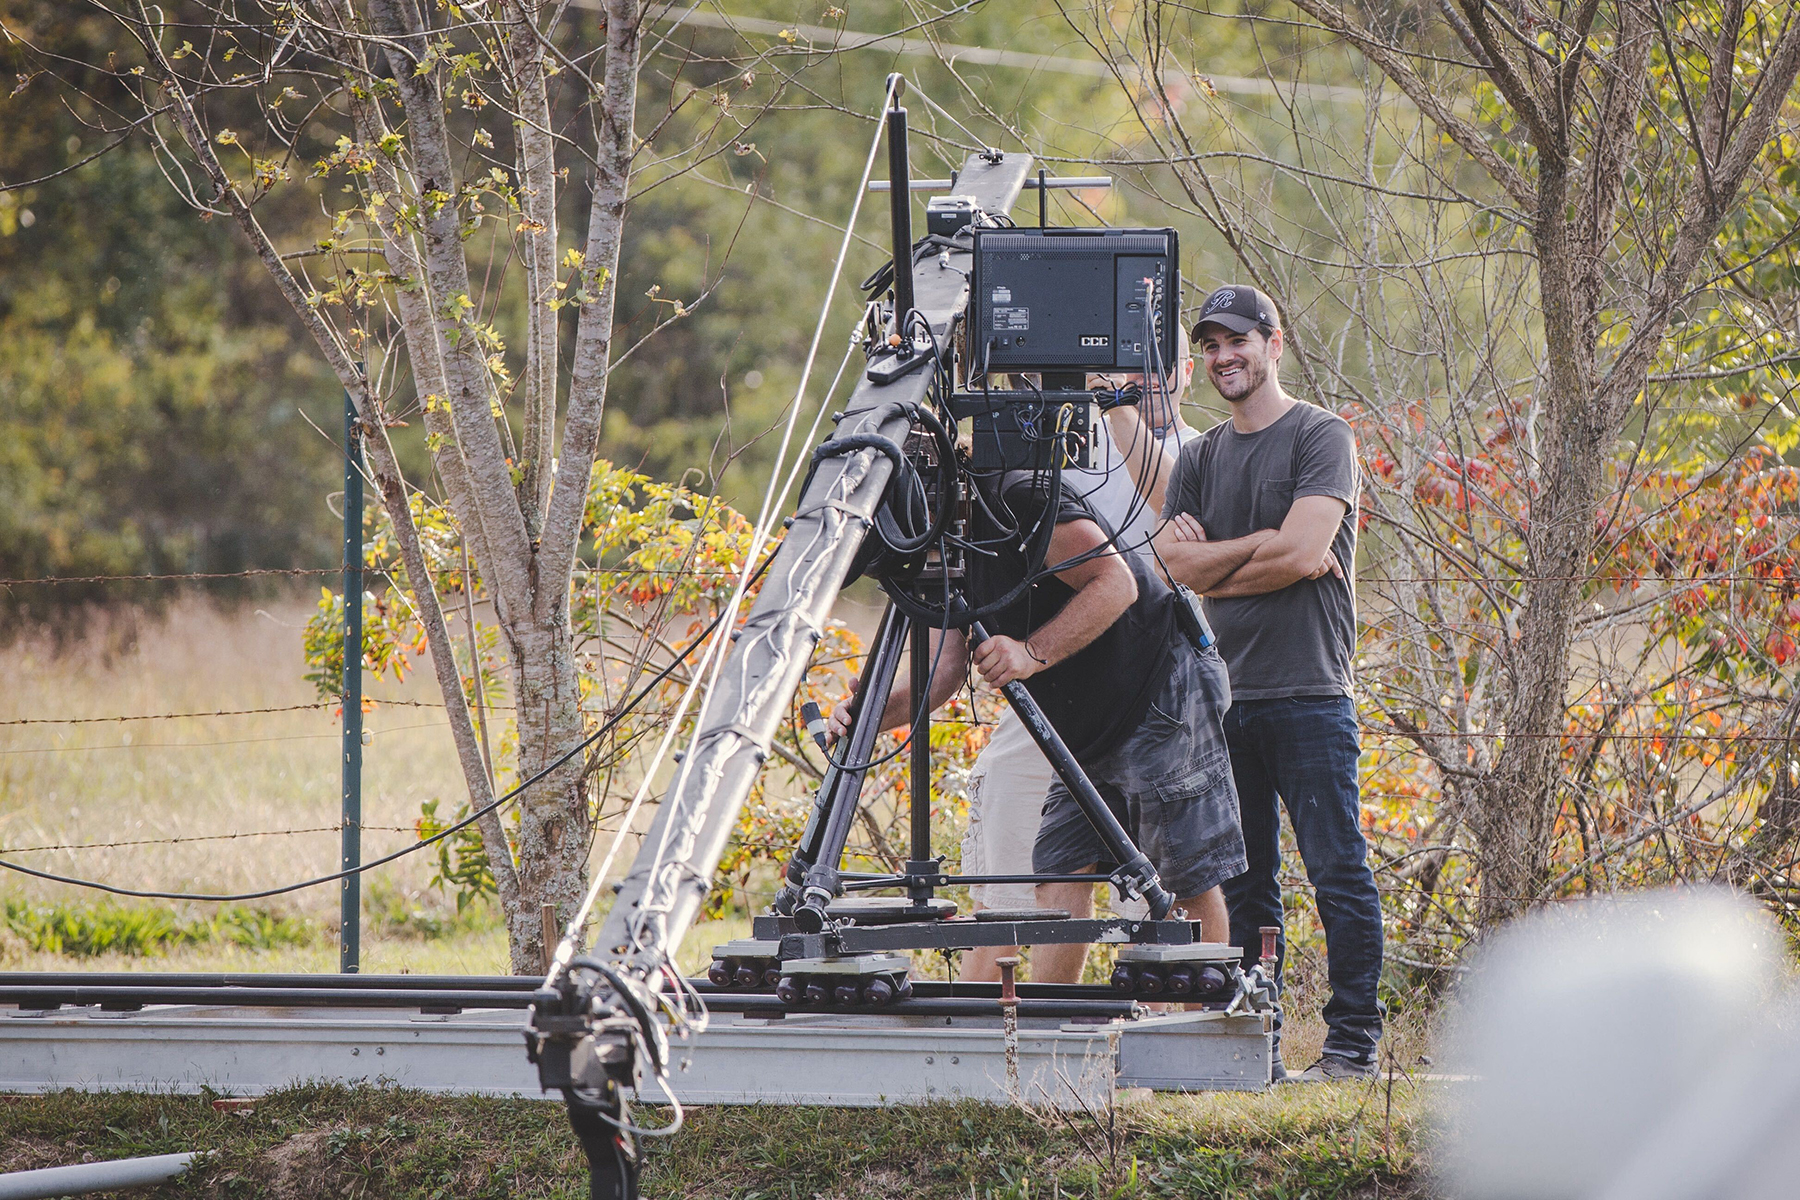 How a Nashville Production Company Plans to Return to Filming